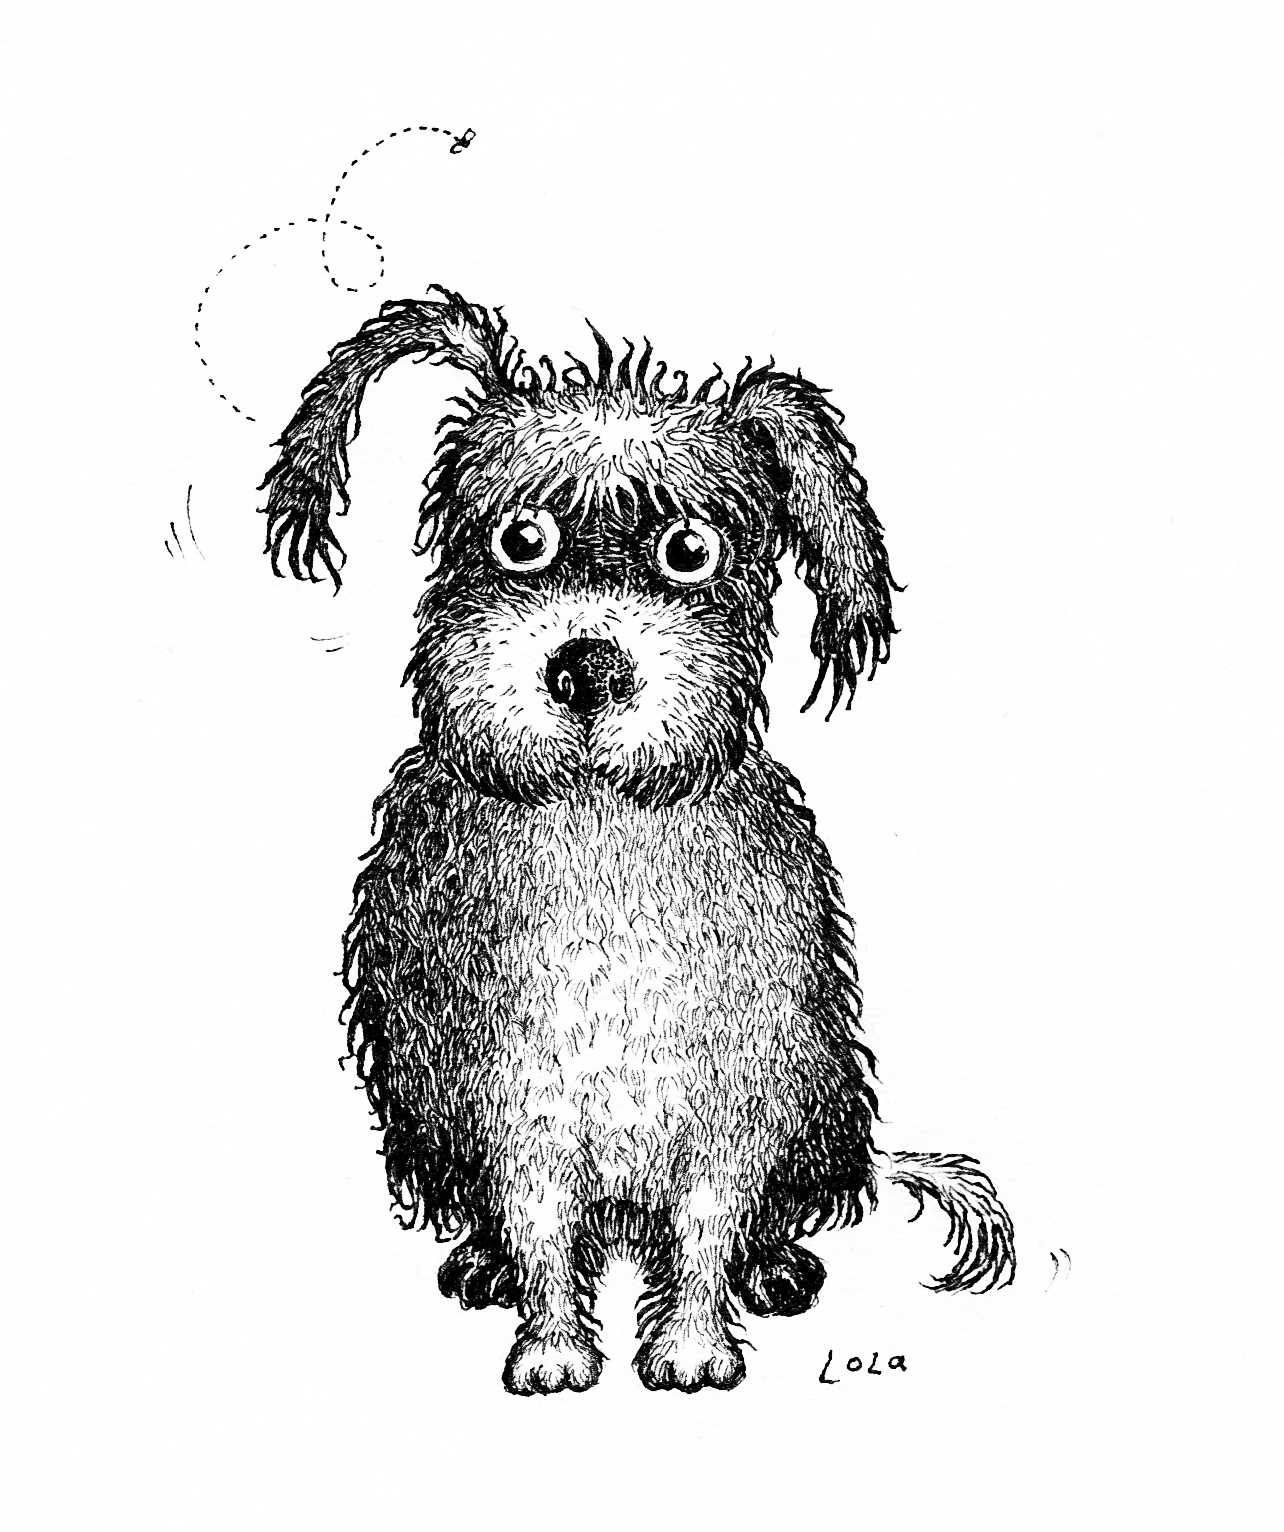 lola the dog pen and ink illustration by sally abrnett